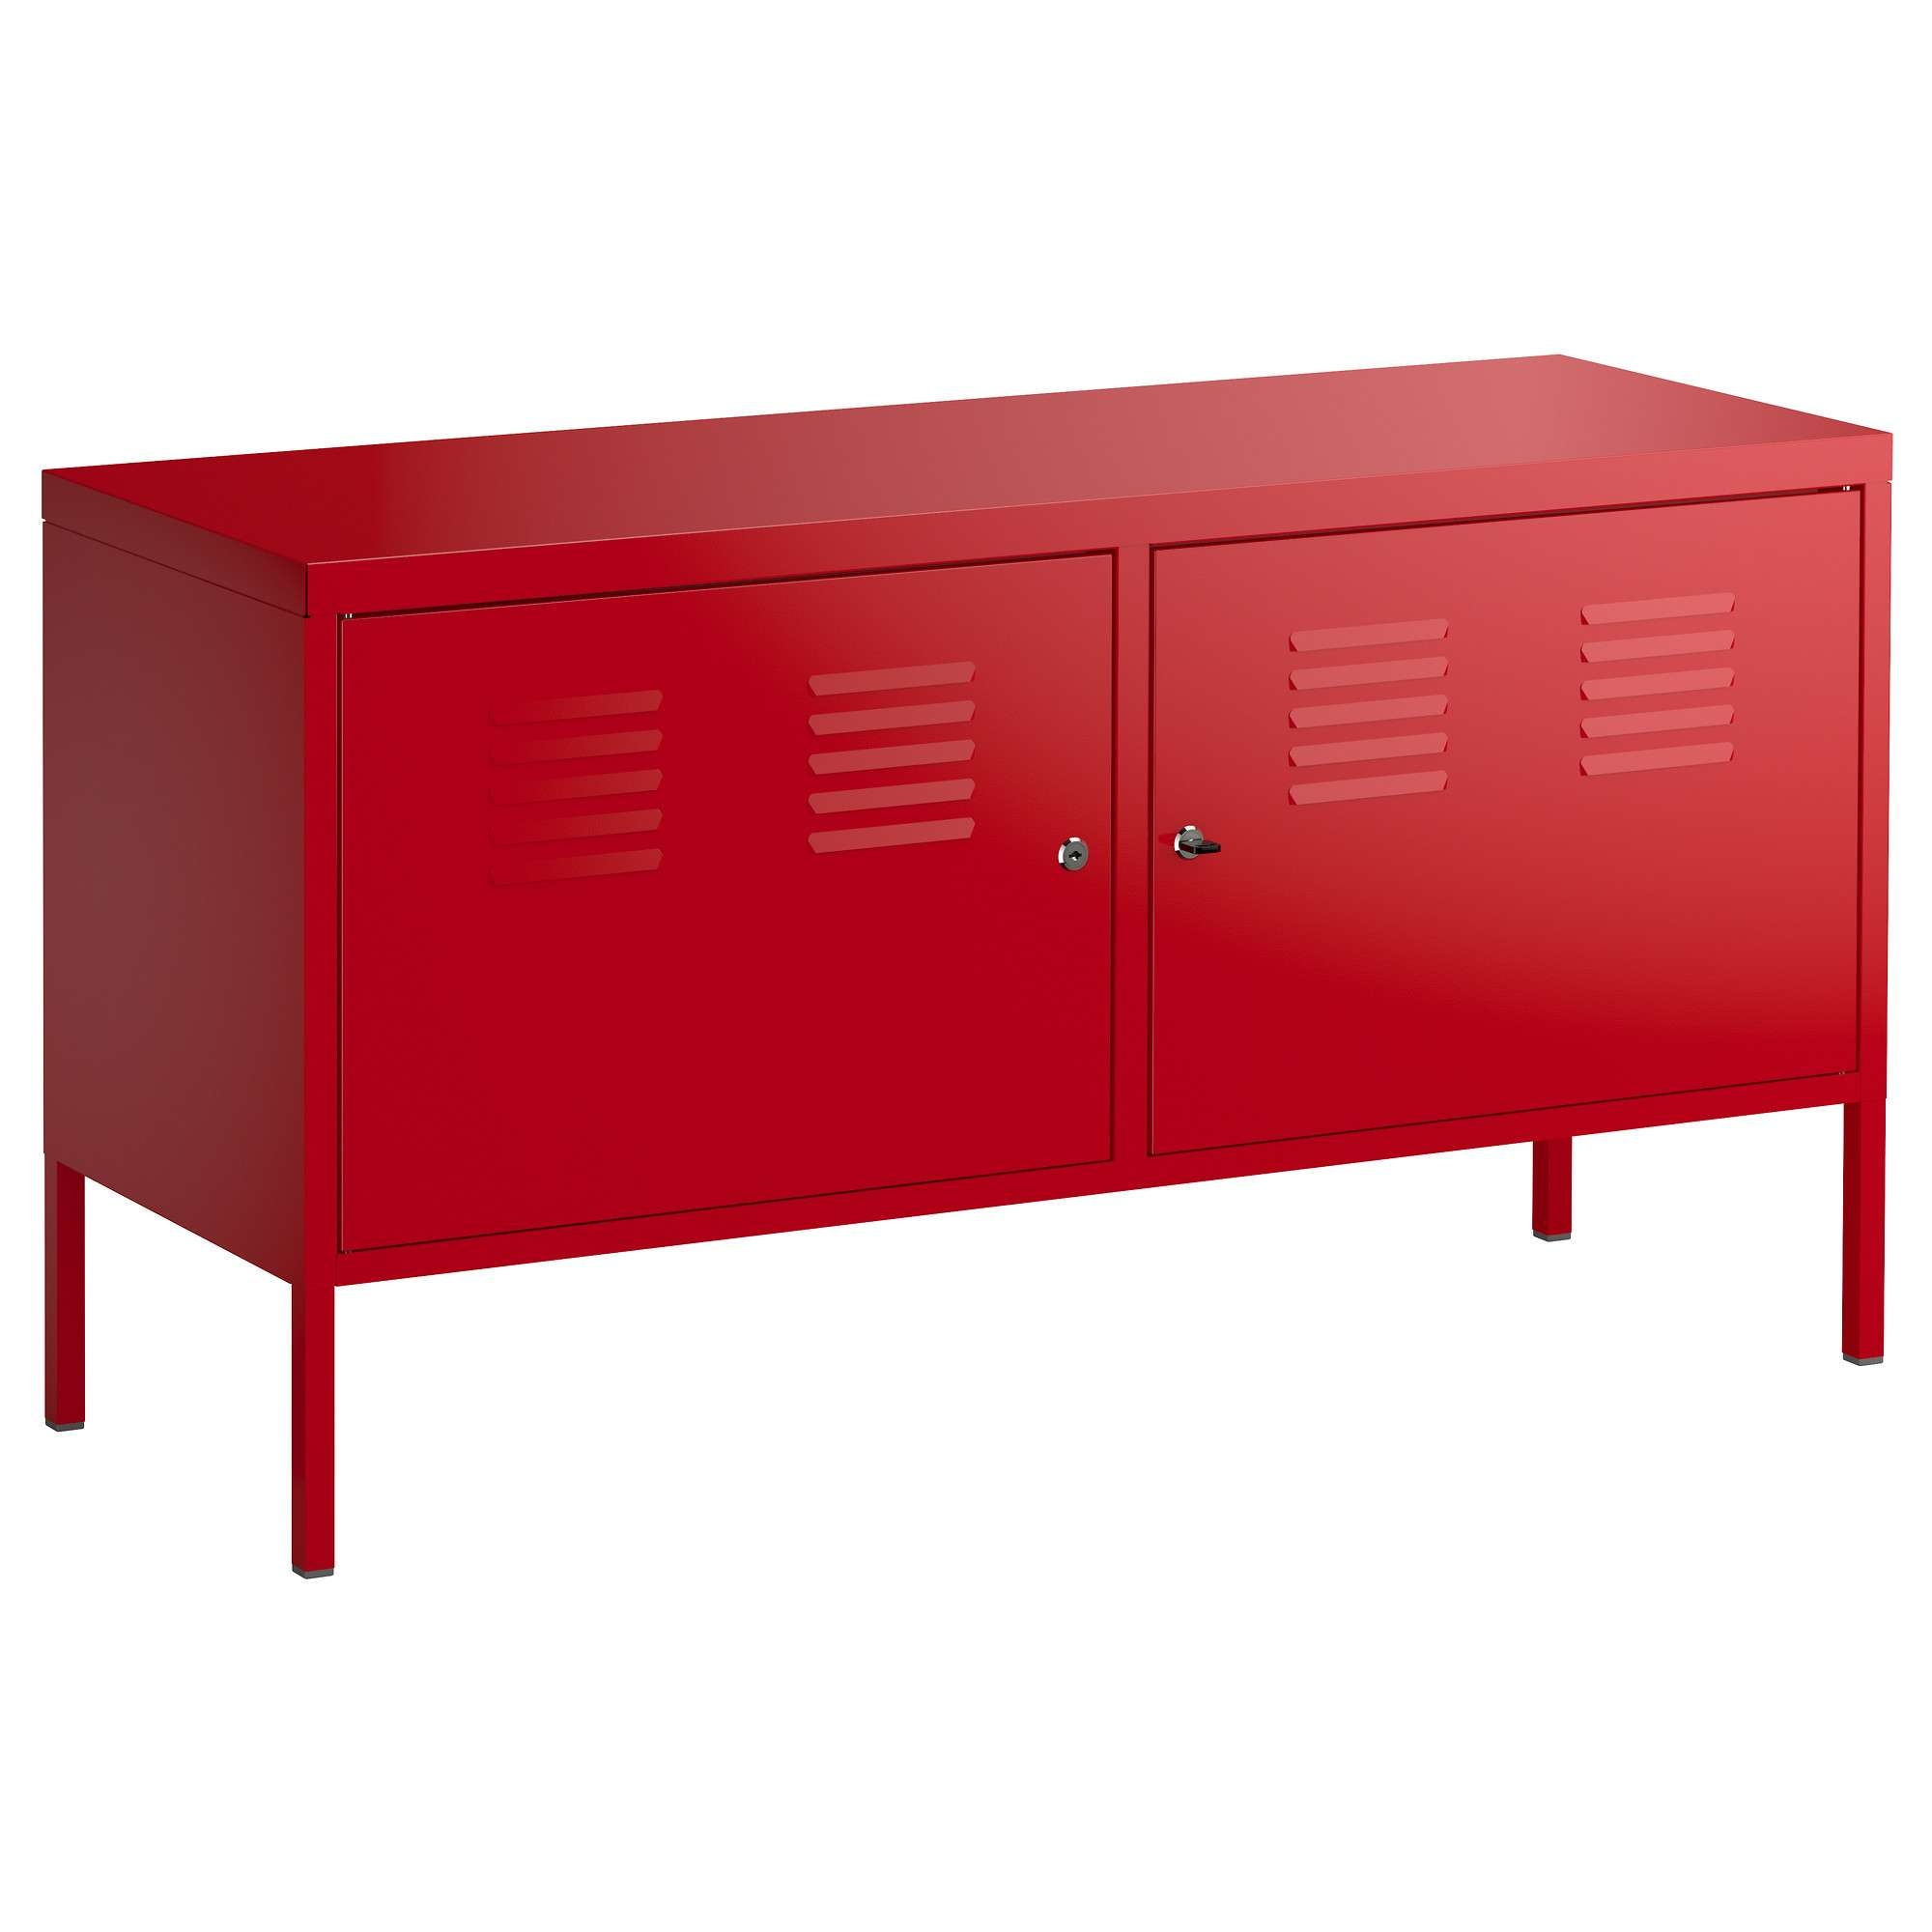 Ikea Ps Cabinet – Red – Ikea Pertaining To Red Tv Cabinets (View 11 of 20)